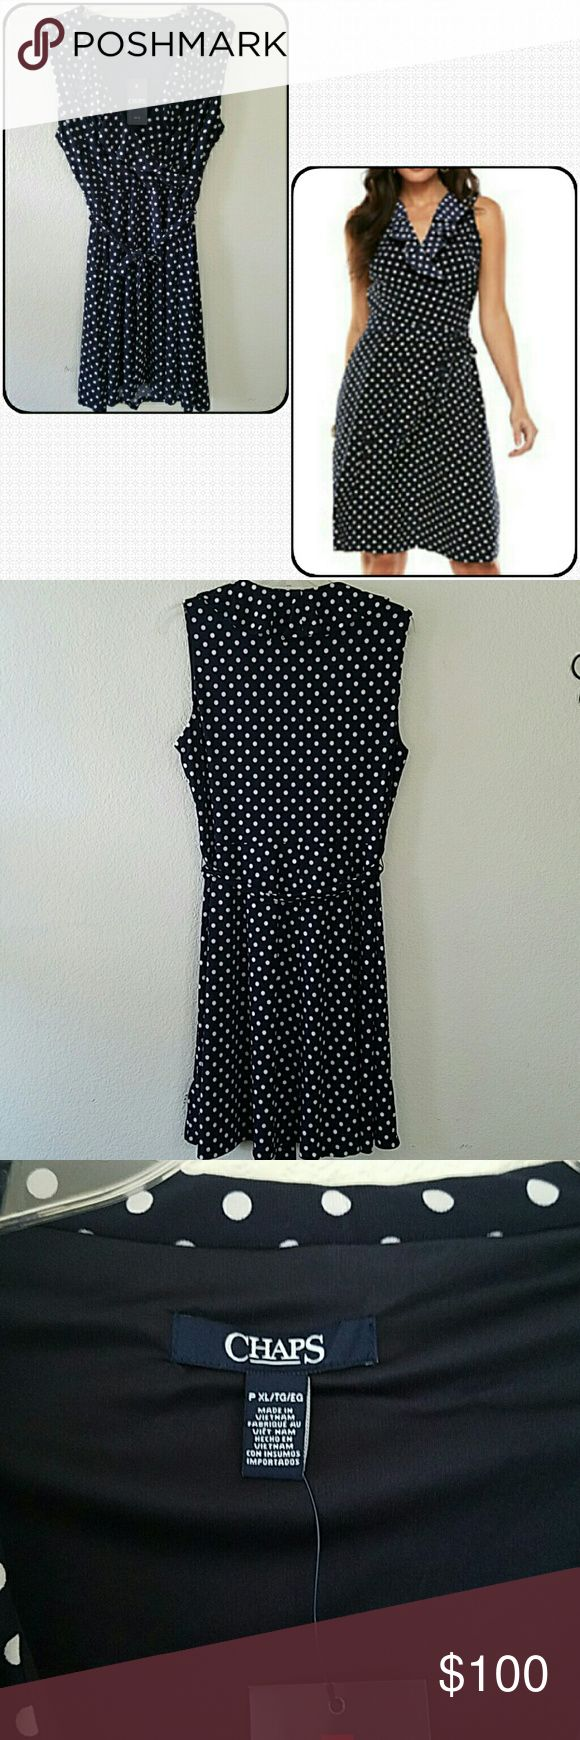 """Chaps Surplice Dress Brand new with tags petite Chaps Polka Dot Surplice dress. Ruffled neckline. No damages. Navy and white. Approx armpit to armpit without stretching 19"""". See 4th pic for details. Chaps Dresses"""